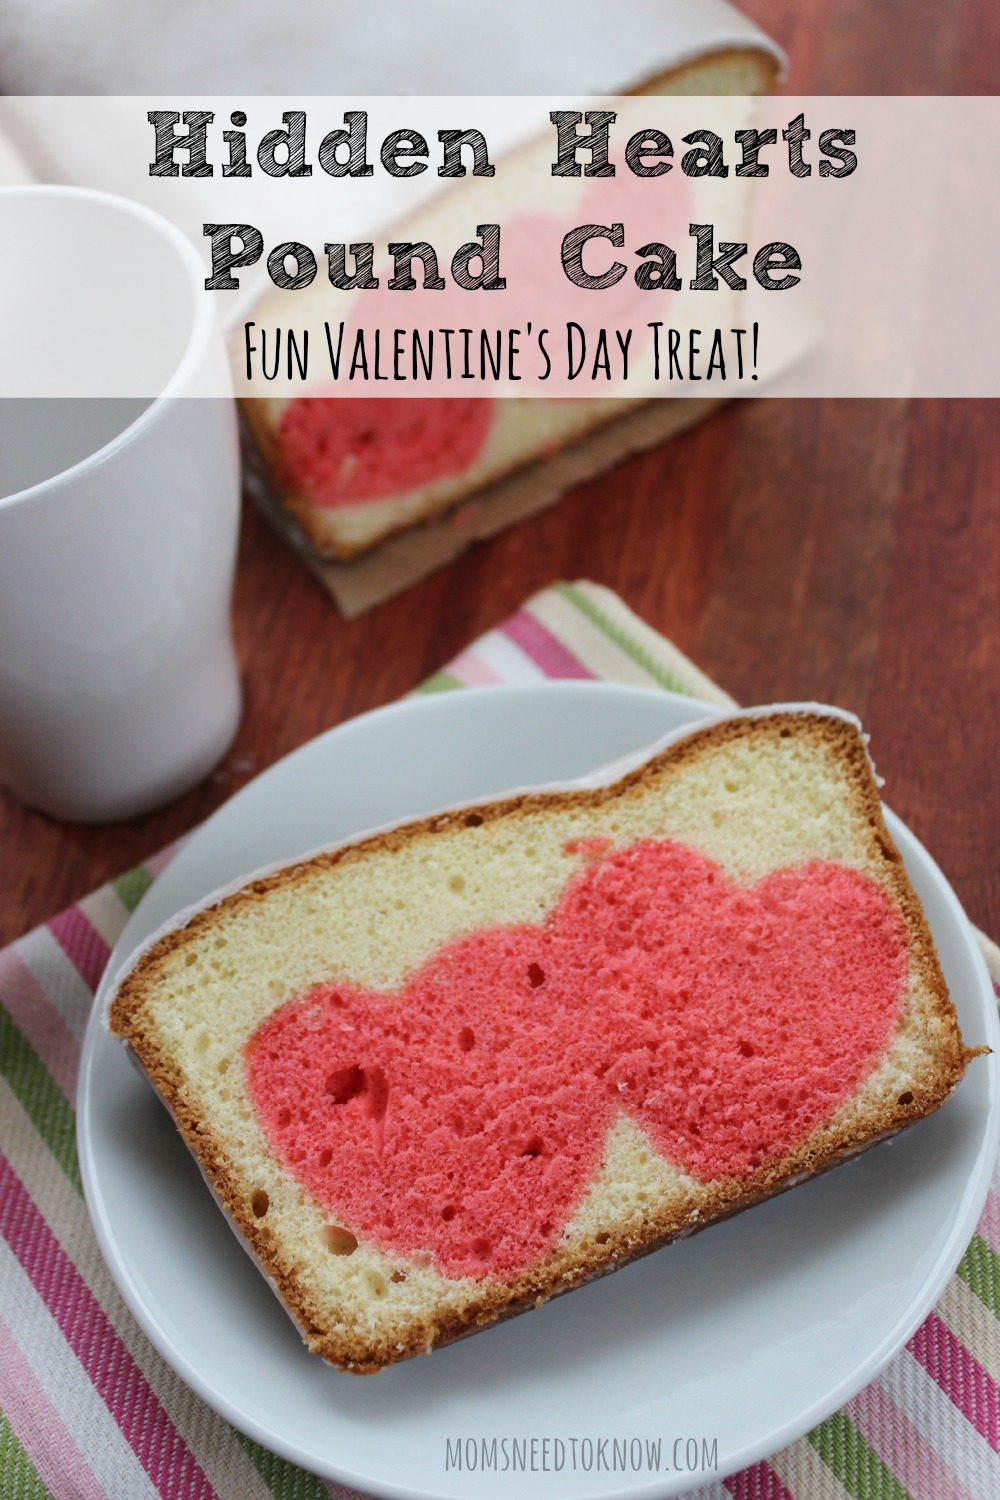 Need a fun and easy Valentine's Day recipe? Try this hidden hearts pound cake with a delicious glaze. Your friends and family will wonder how you did it!